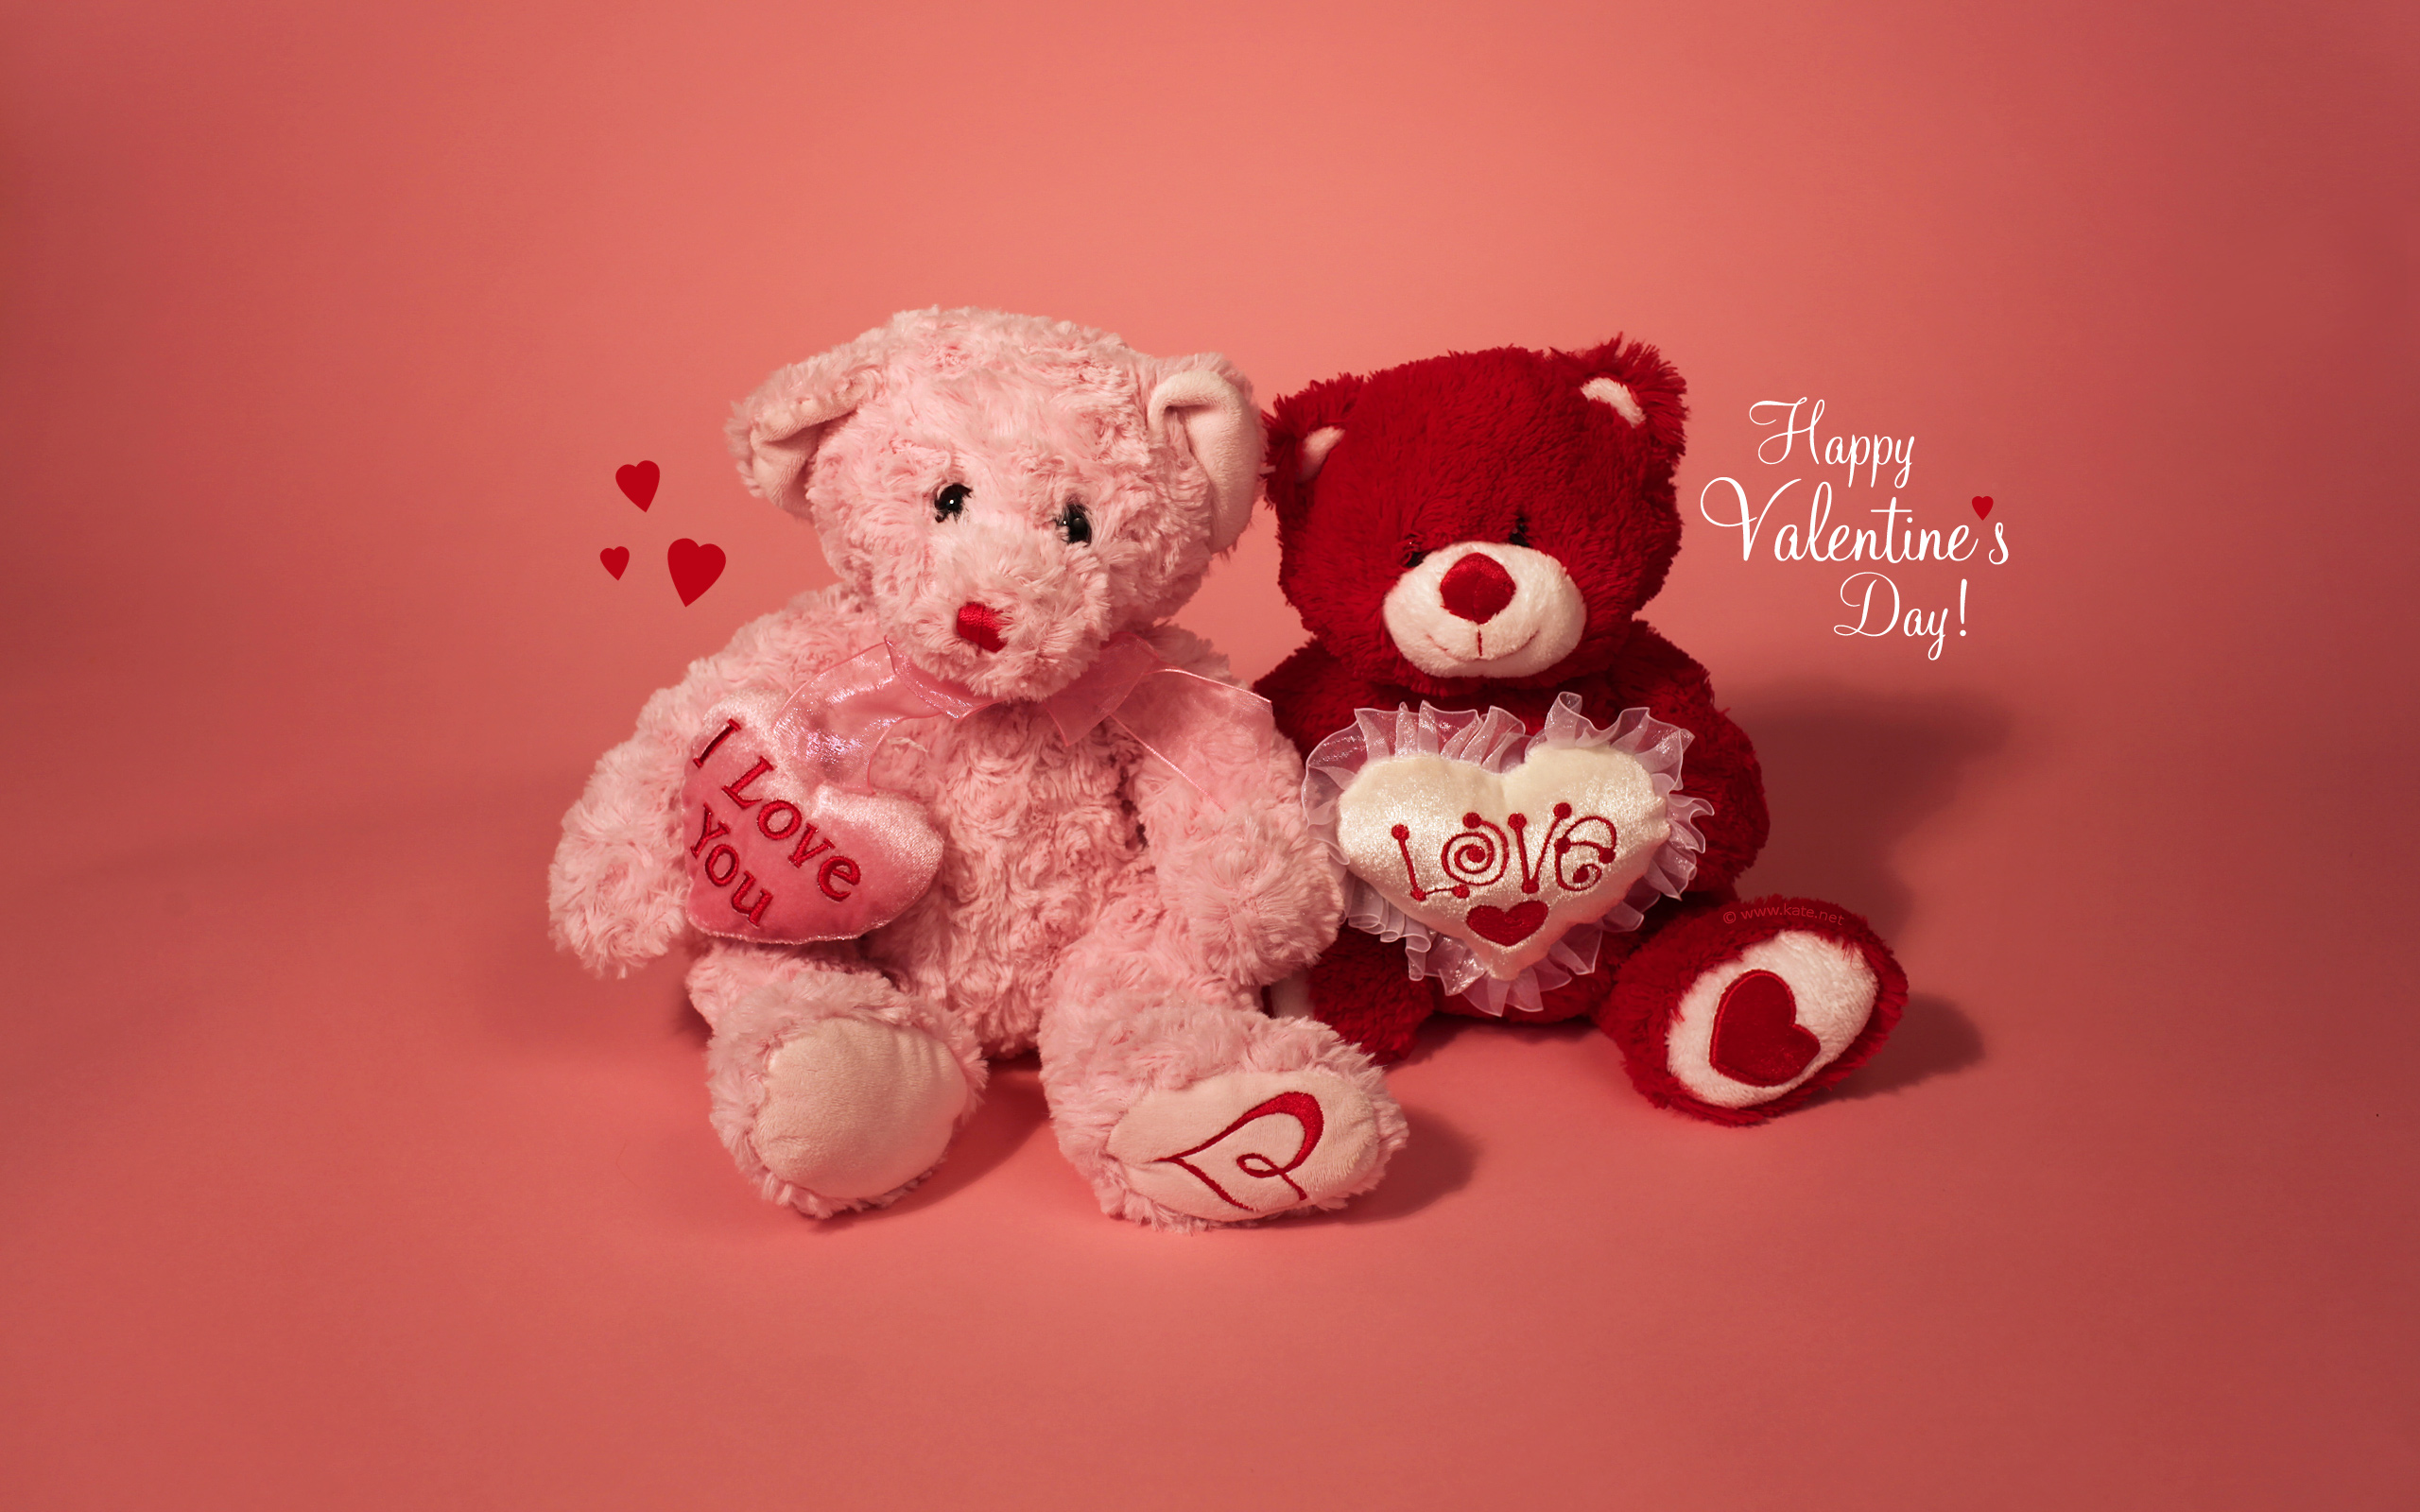 valentines day teddy bear wallpaper free hd desktop